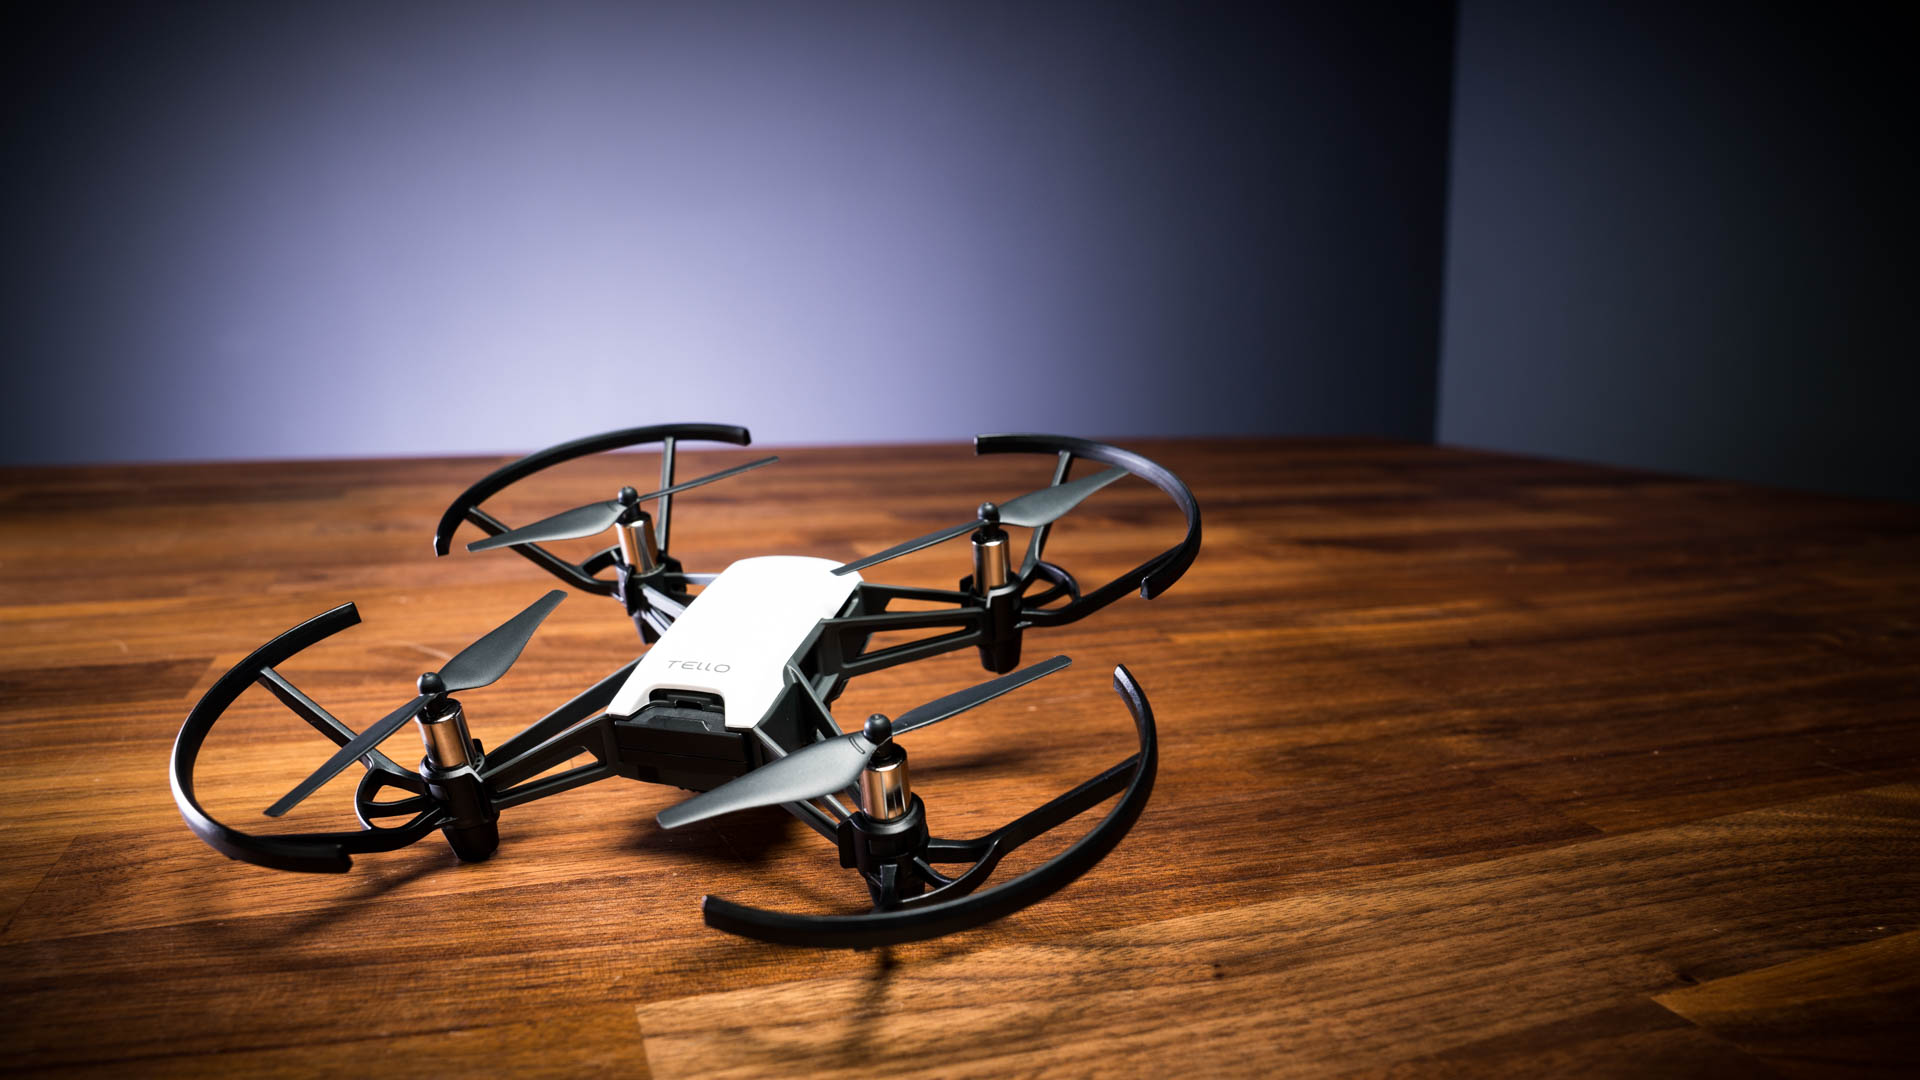 The Ryze Tello May Be the Best Beginner Drone of 2018